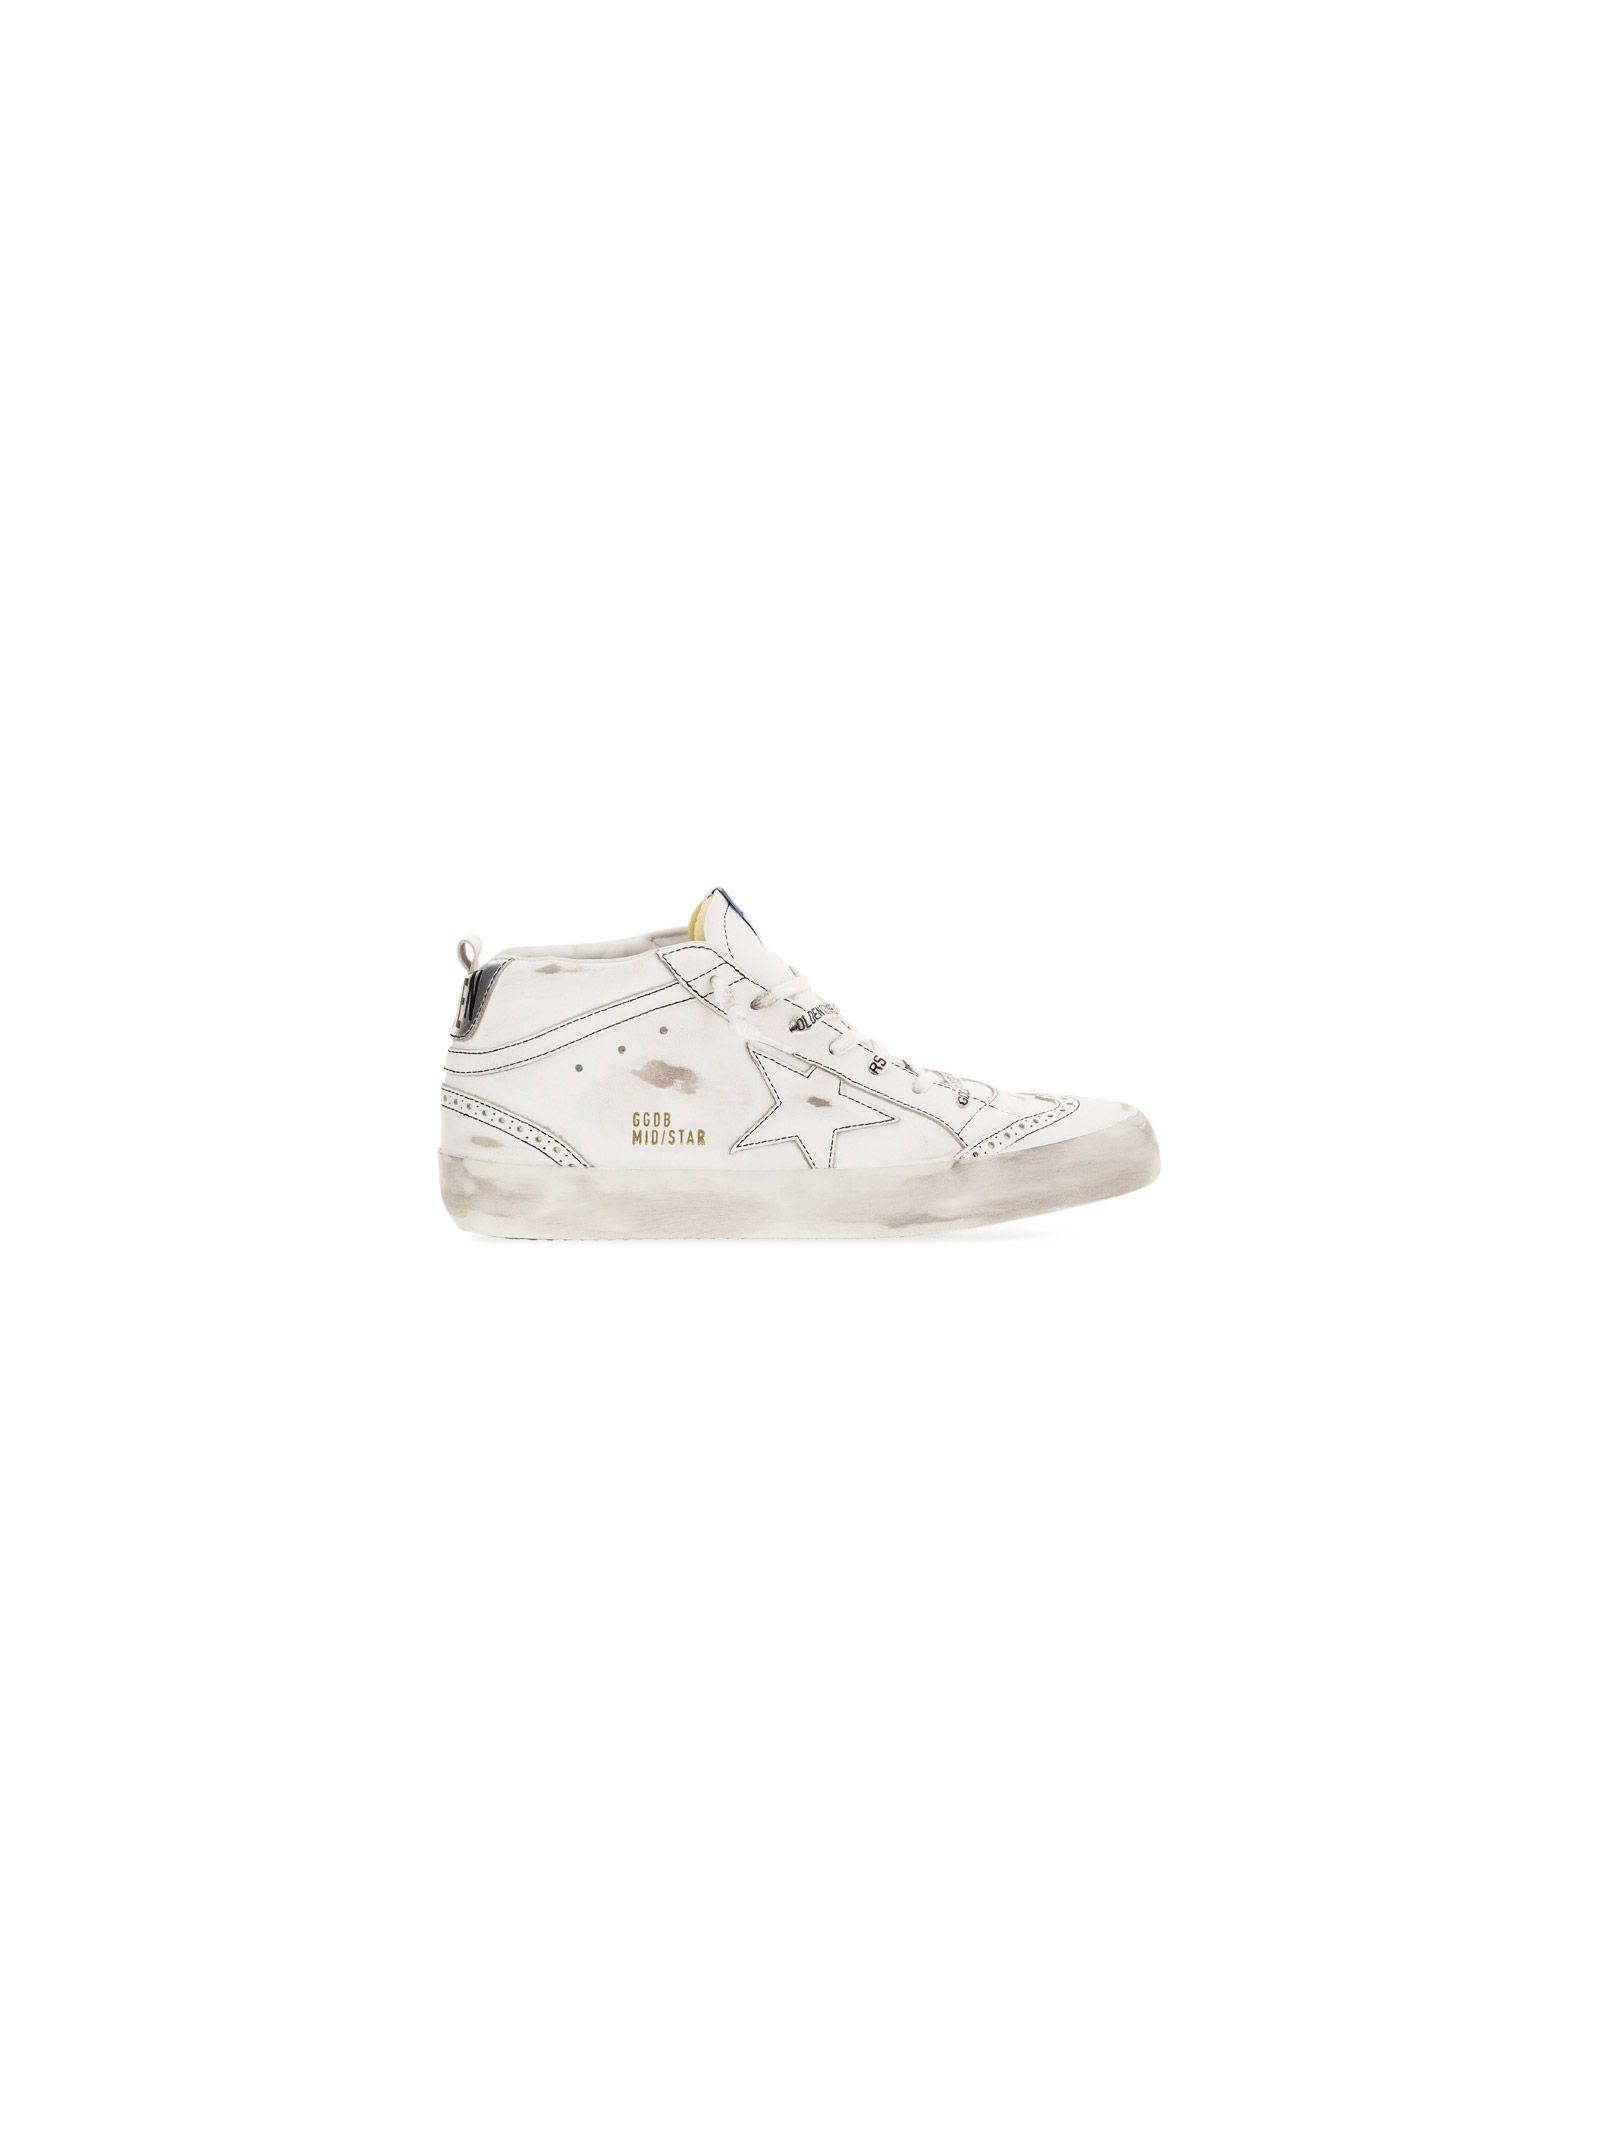 Golden Goose Leathers GOLDEN GOOSE MEN'S GMF00122F00124910449 WHITE OTHER MATERIALS SNEAKERS